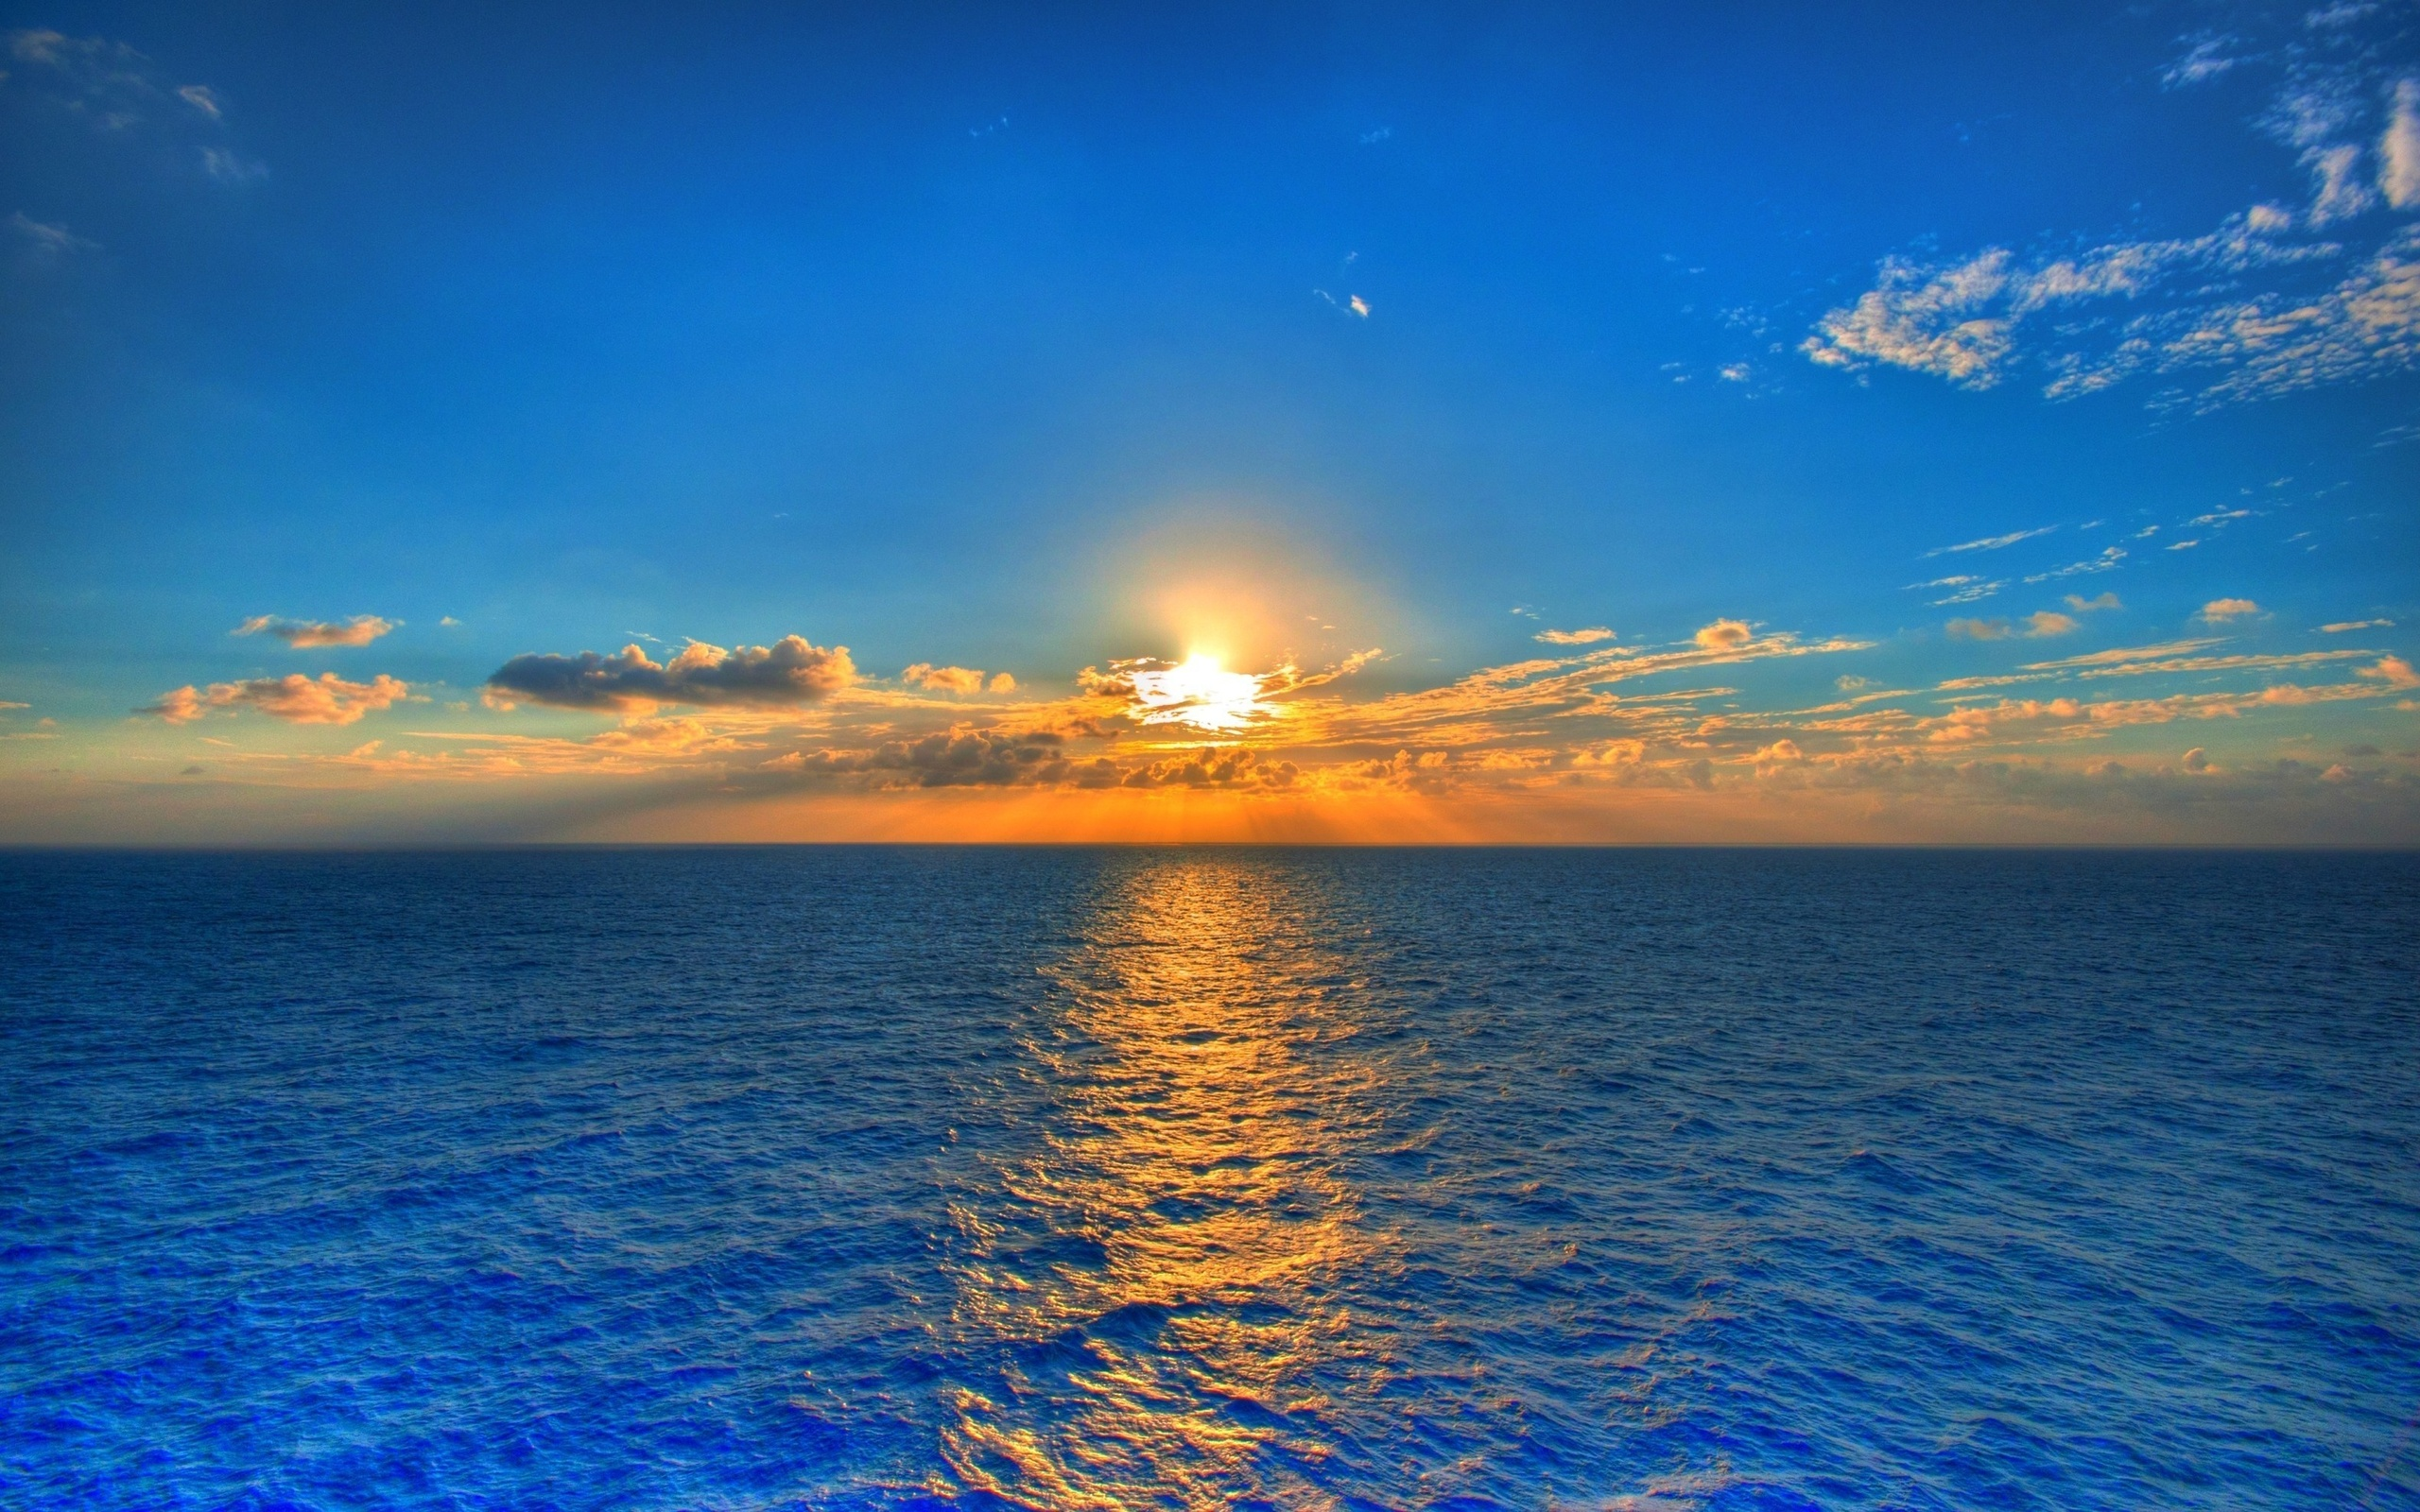 Sea Sunrise Sky Clouds Feed Wallpaper Hot Hd 2560x1600px